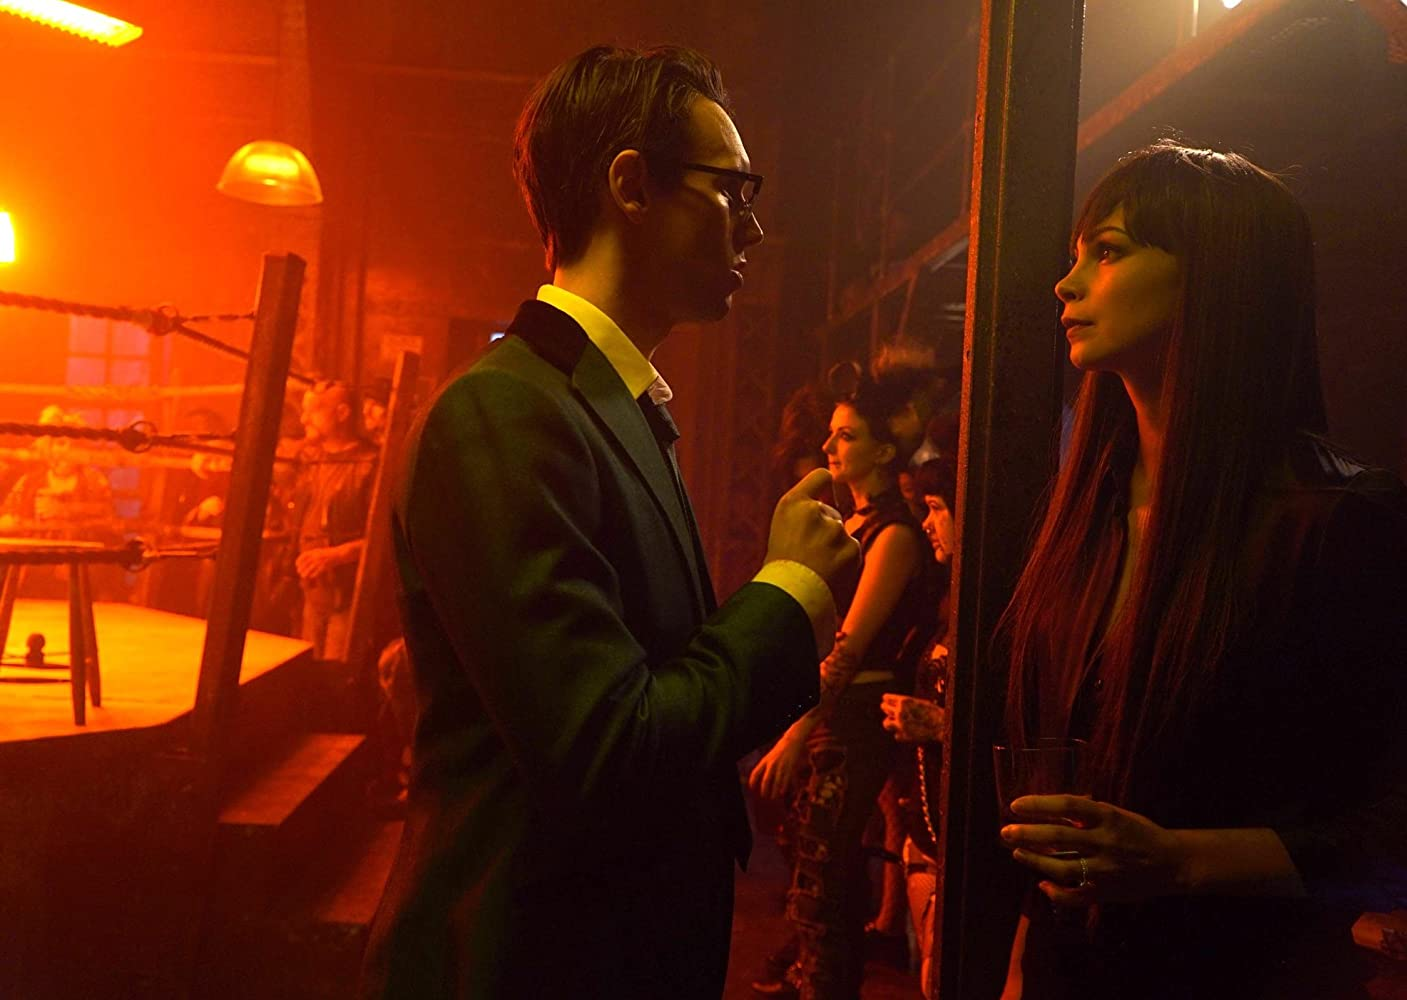 Morena Baccarin and Cory Michael Smith in Gotham (2014)